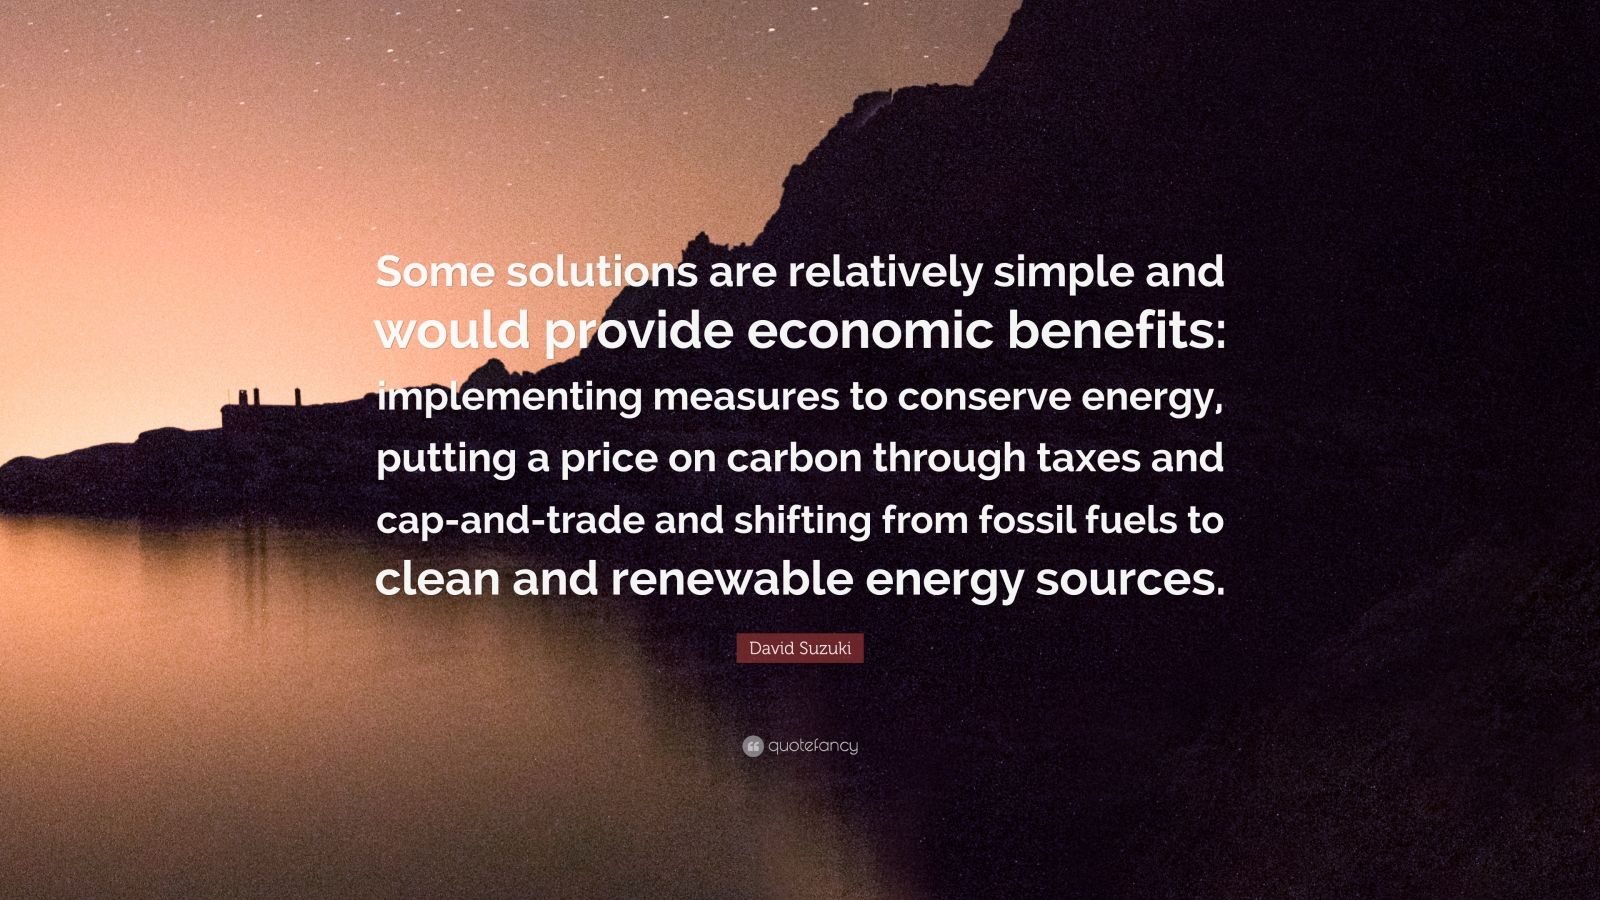 """David Suzuki Quote: """"Some solutions are relatively simple and would provide economic benefits: implementing measures to conserve energy, putting a price on carbon through taxes and cap-and-trade and shifting from fossil fuels to clean and renewable energy sources."""""""